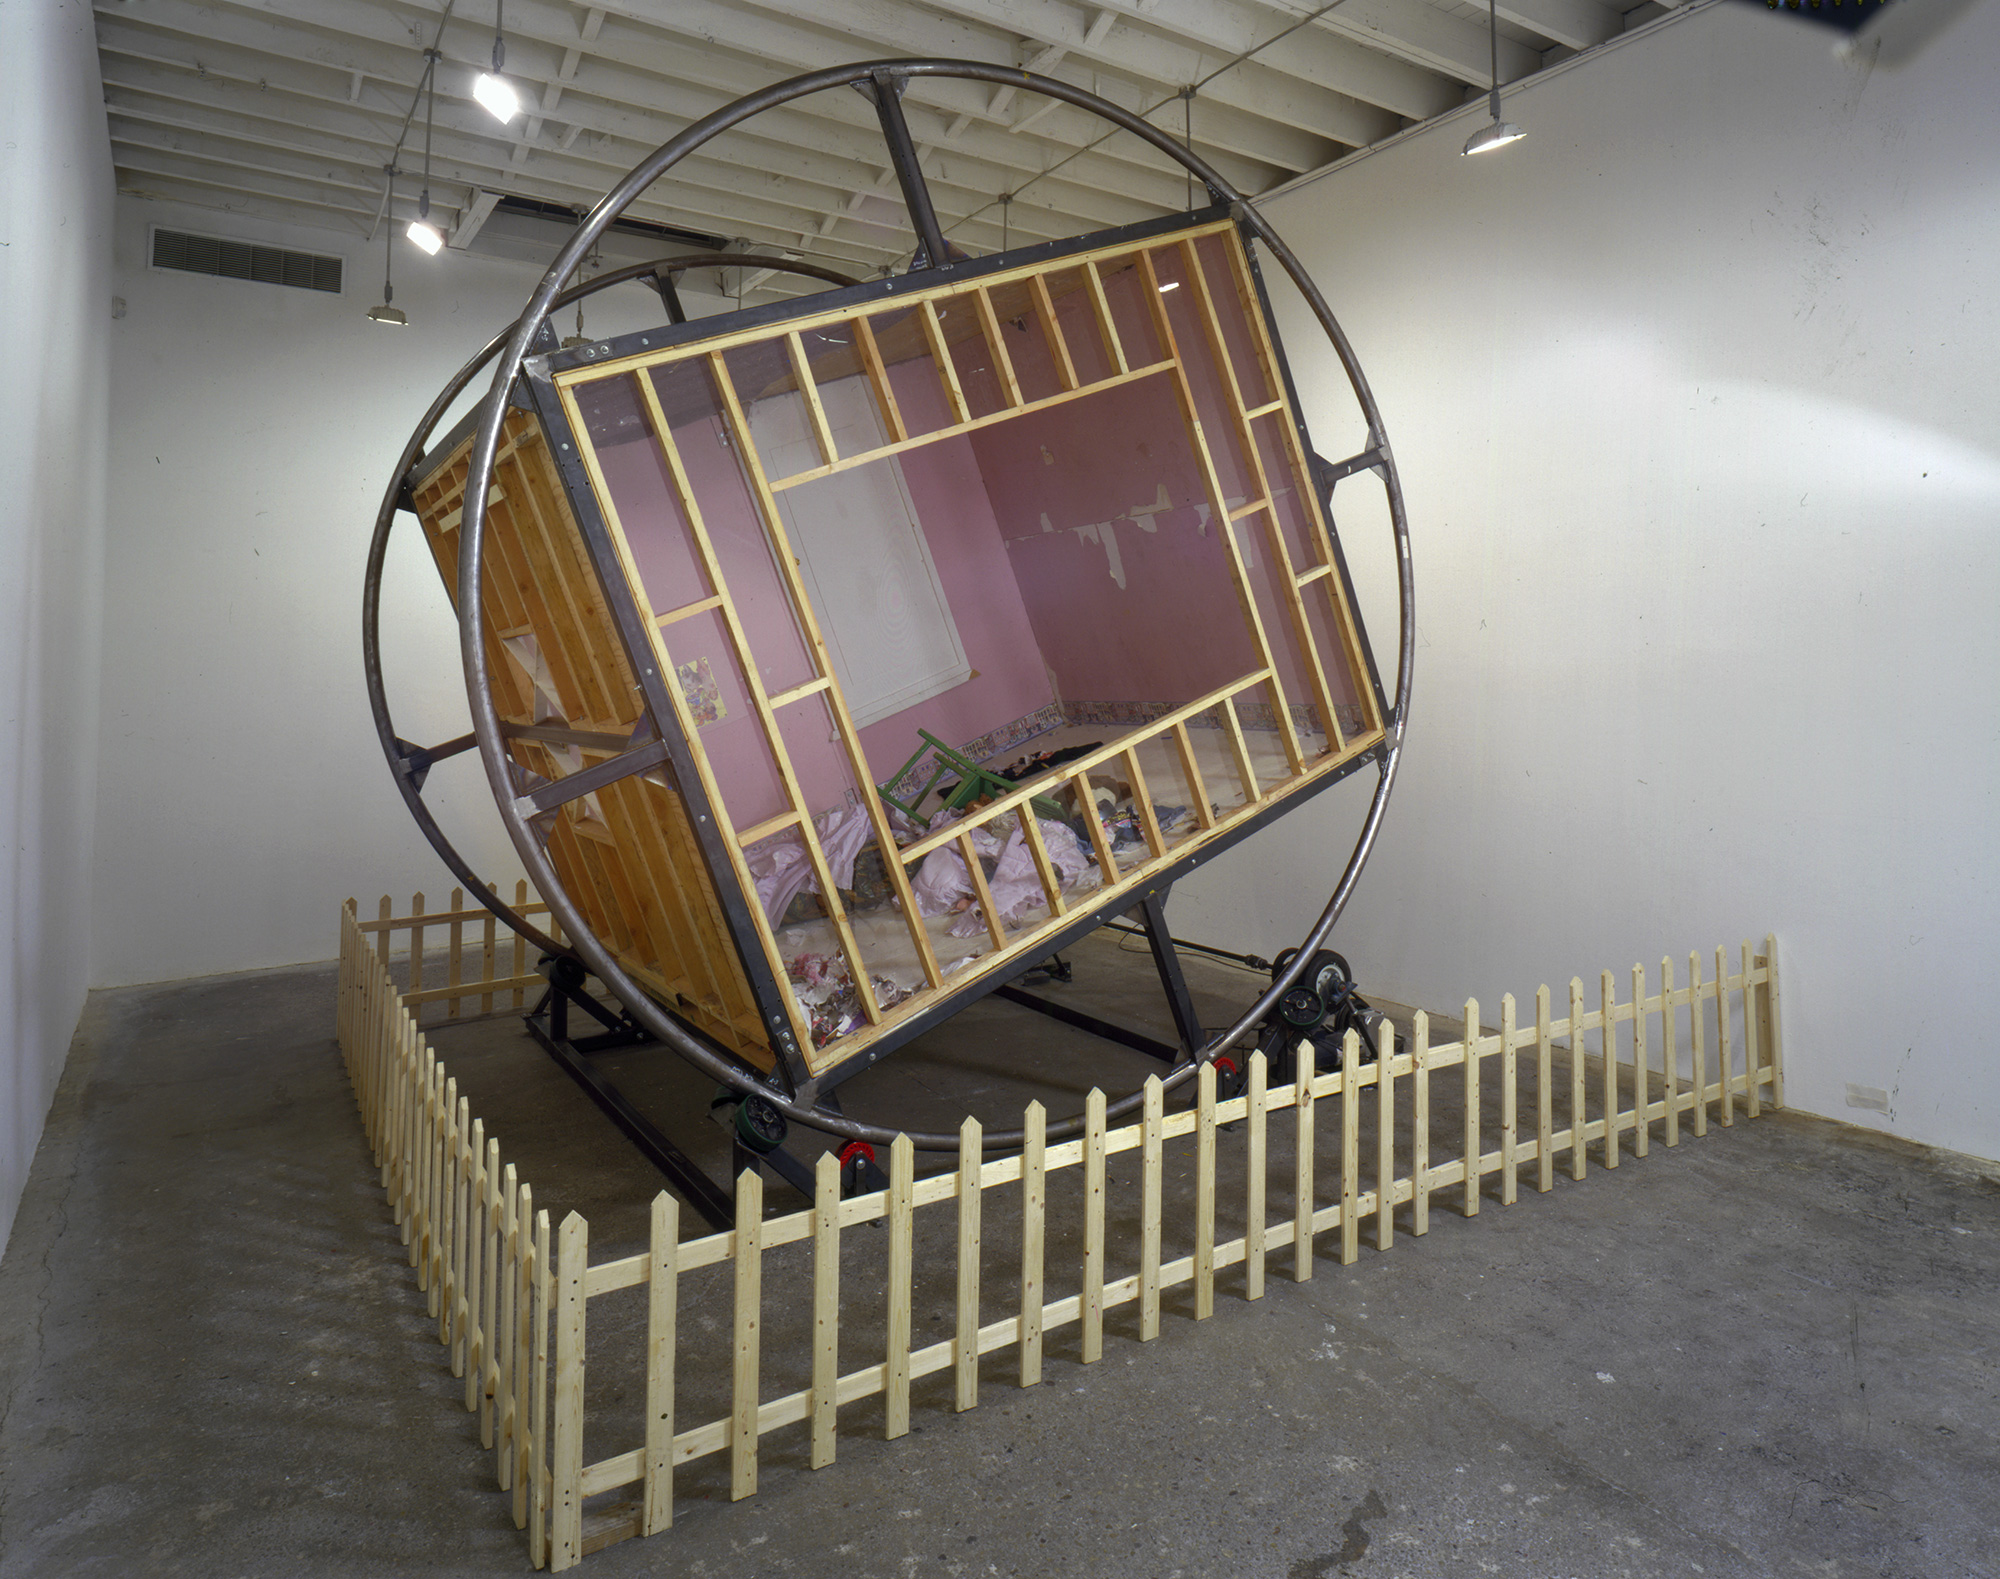 Martin Kersels,  Tumble Room  (2001), installation view at Deitch Projects, New York